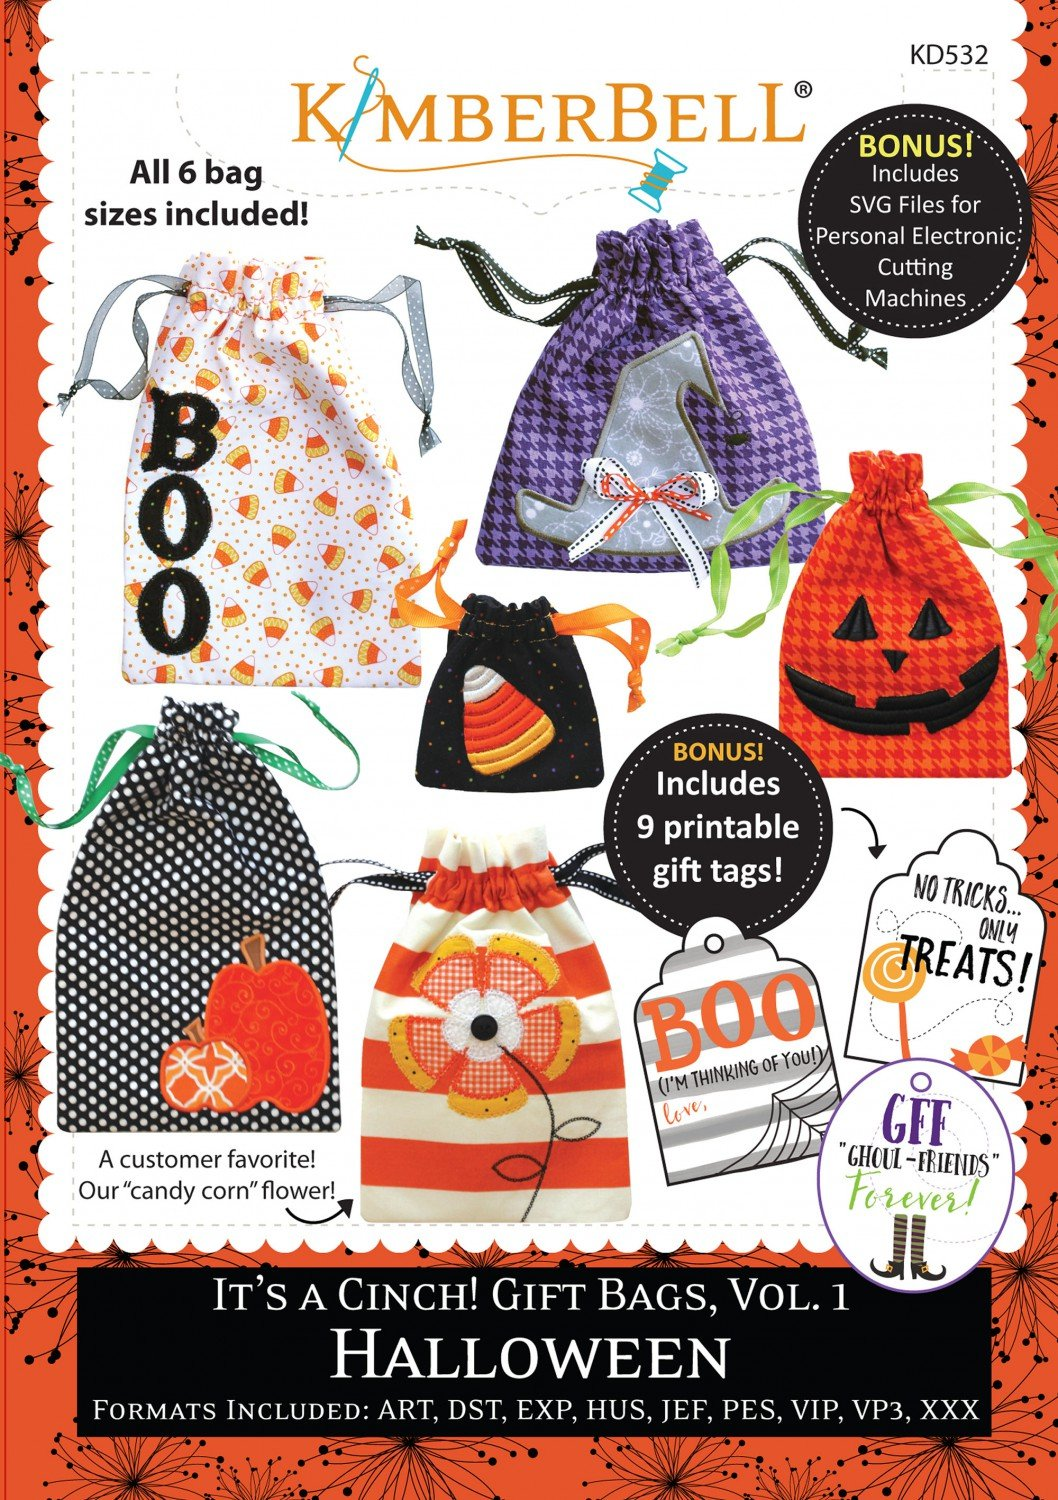 It's a Cinch! Gift Bags Halloween CD